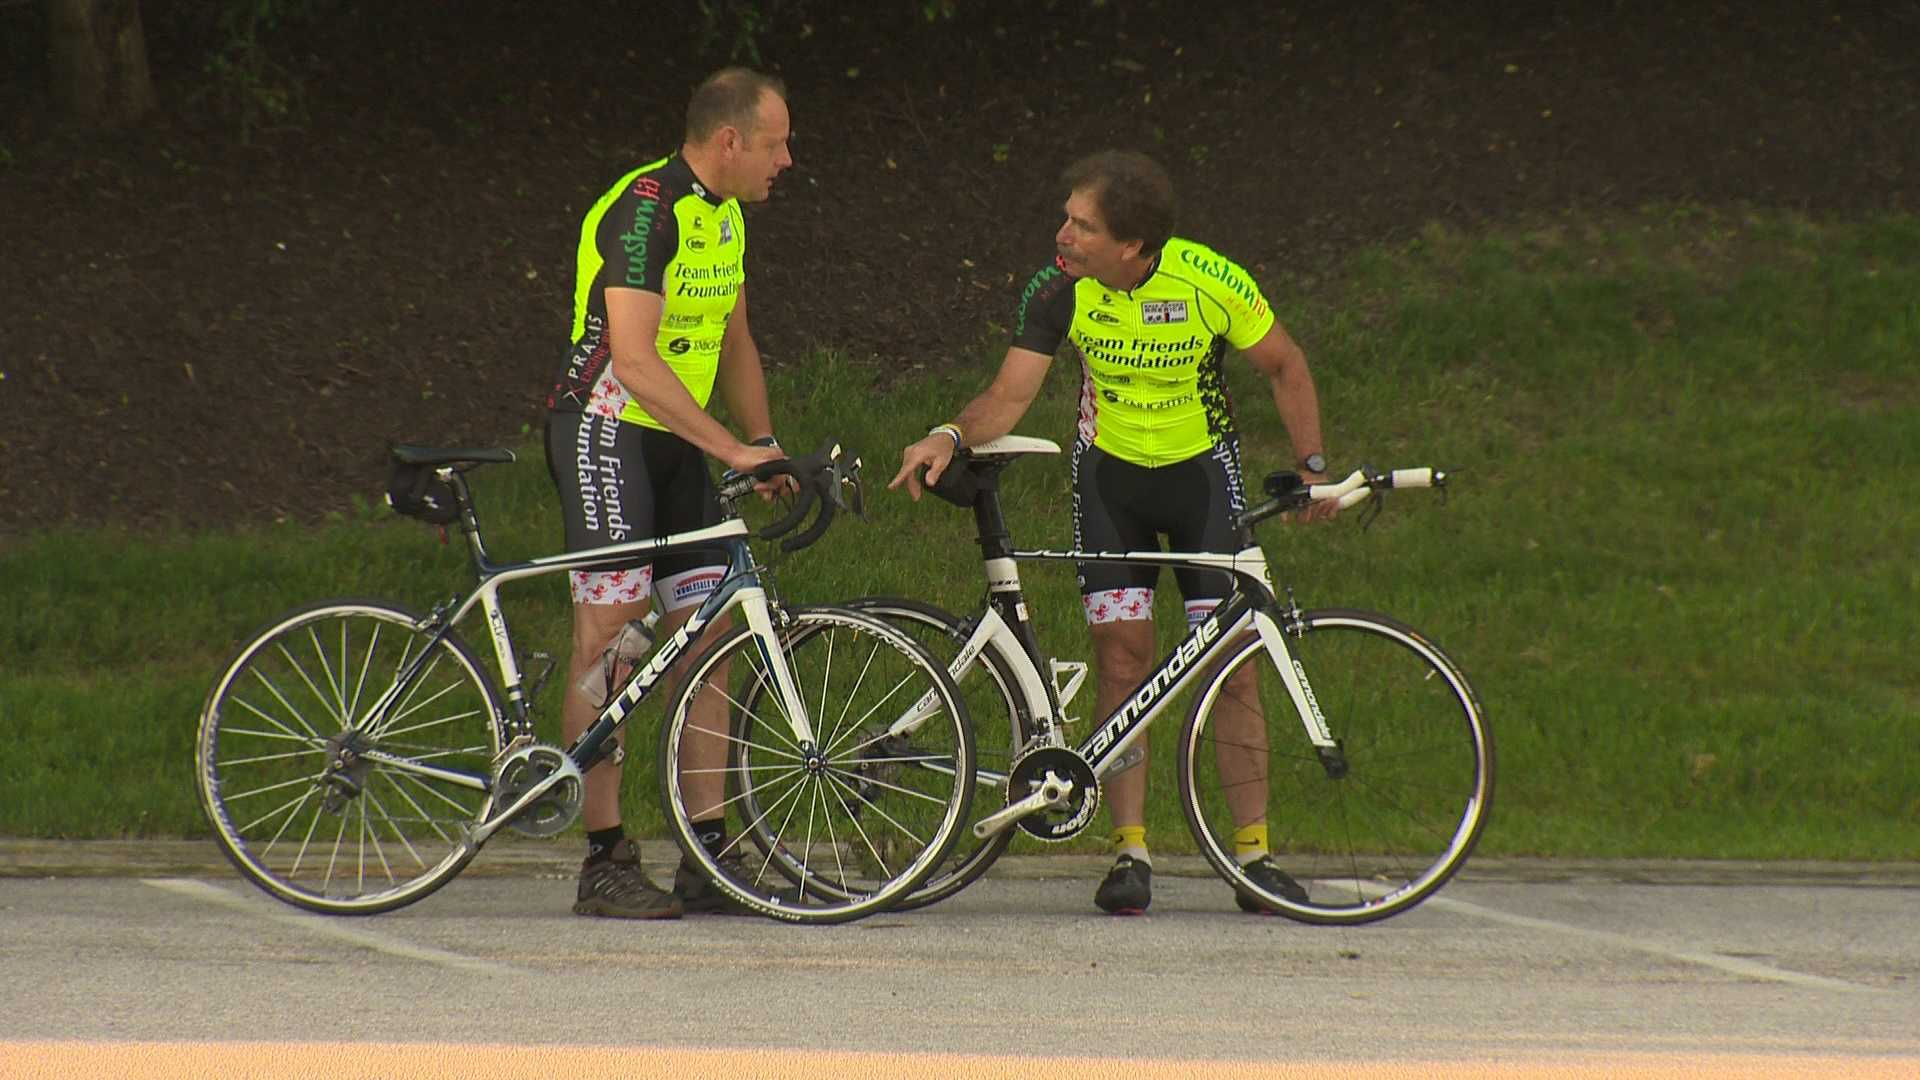 Leo Pruissen and Dr. Barnaby Starr plan to take part in Race Across America to raise money for the Friends Foundation.